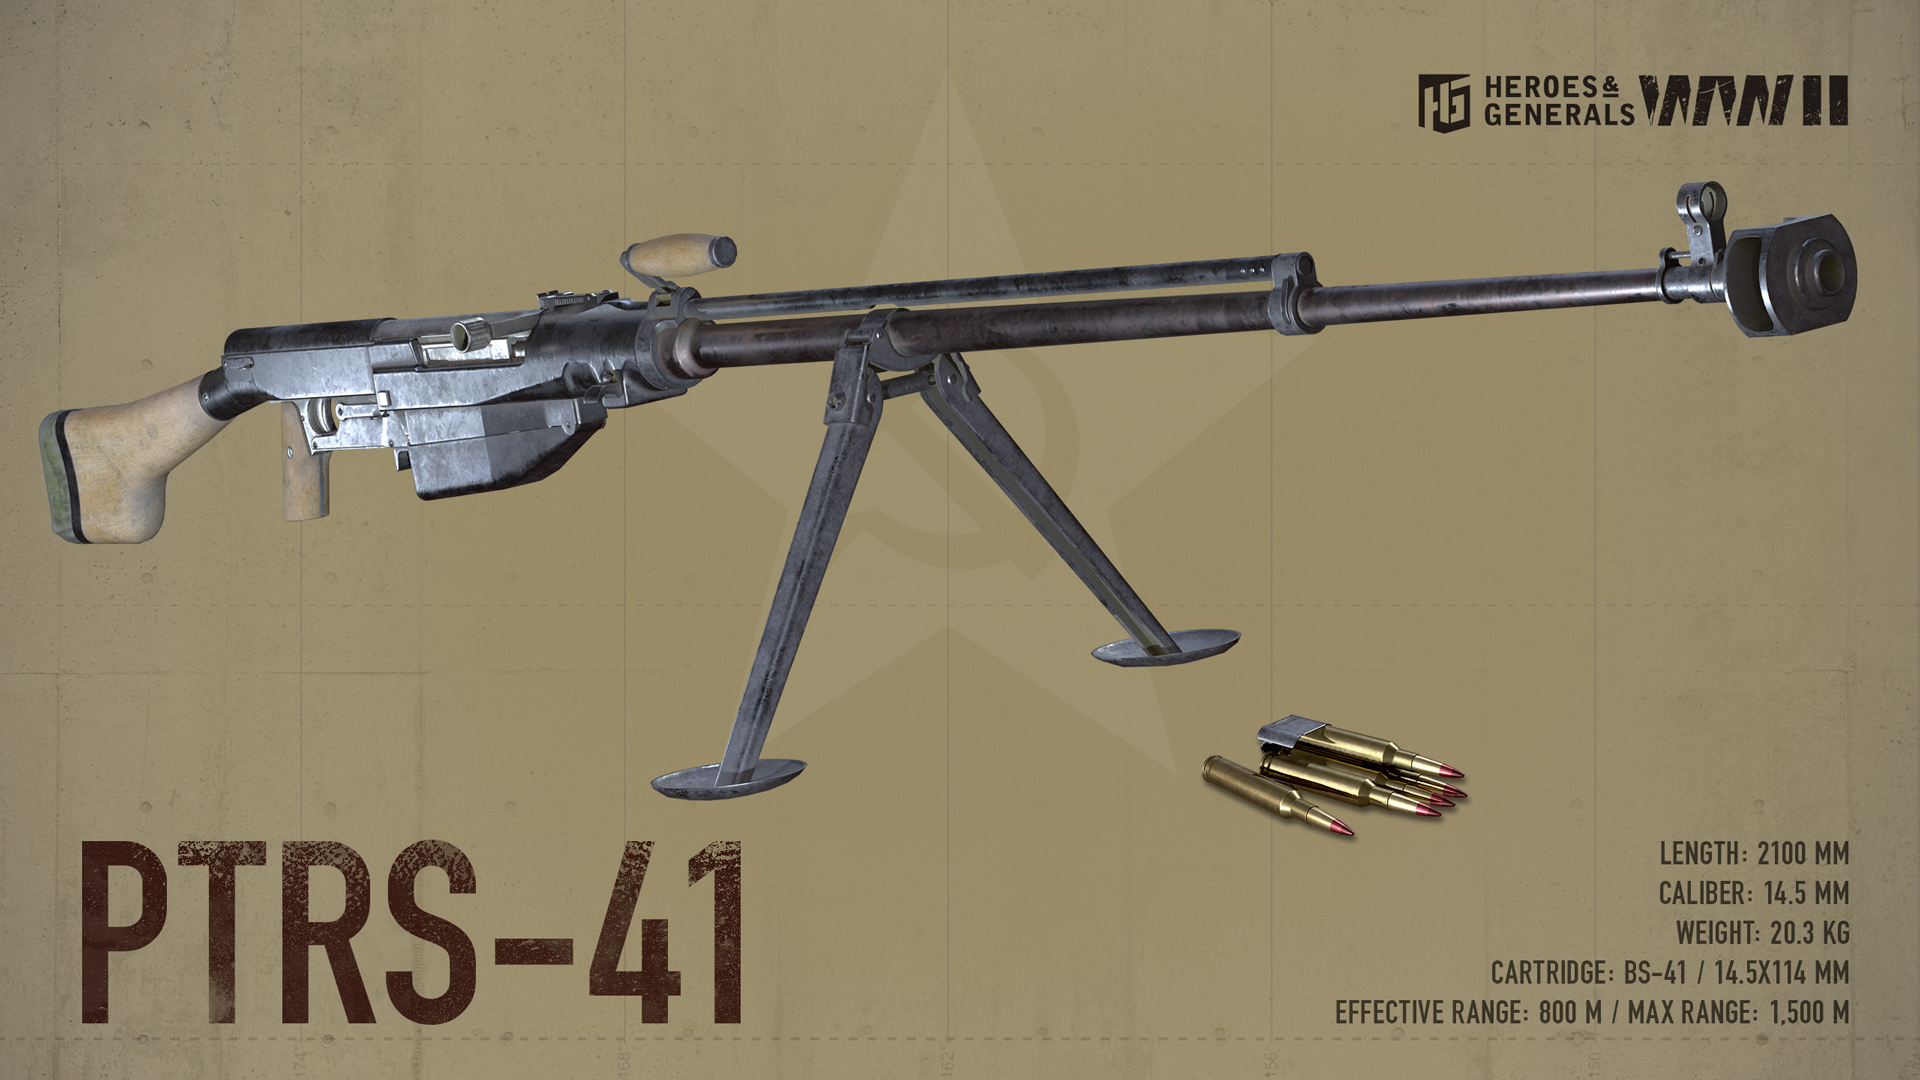 10a92f292 The PTRS-41 or Simonov anti-tank rifle is the semi-automatic analog of the  PTRD-41 anti-tank rifle. The gas-operated PTRS fires a 14.5 mm armour-piercing  ...